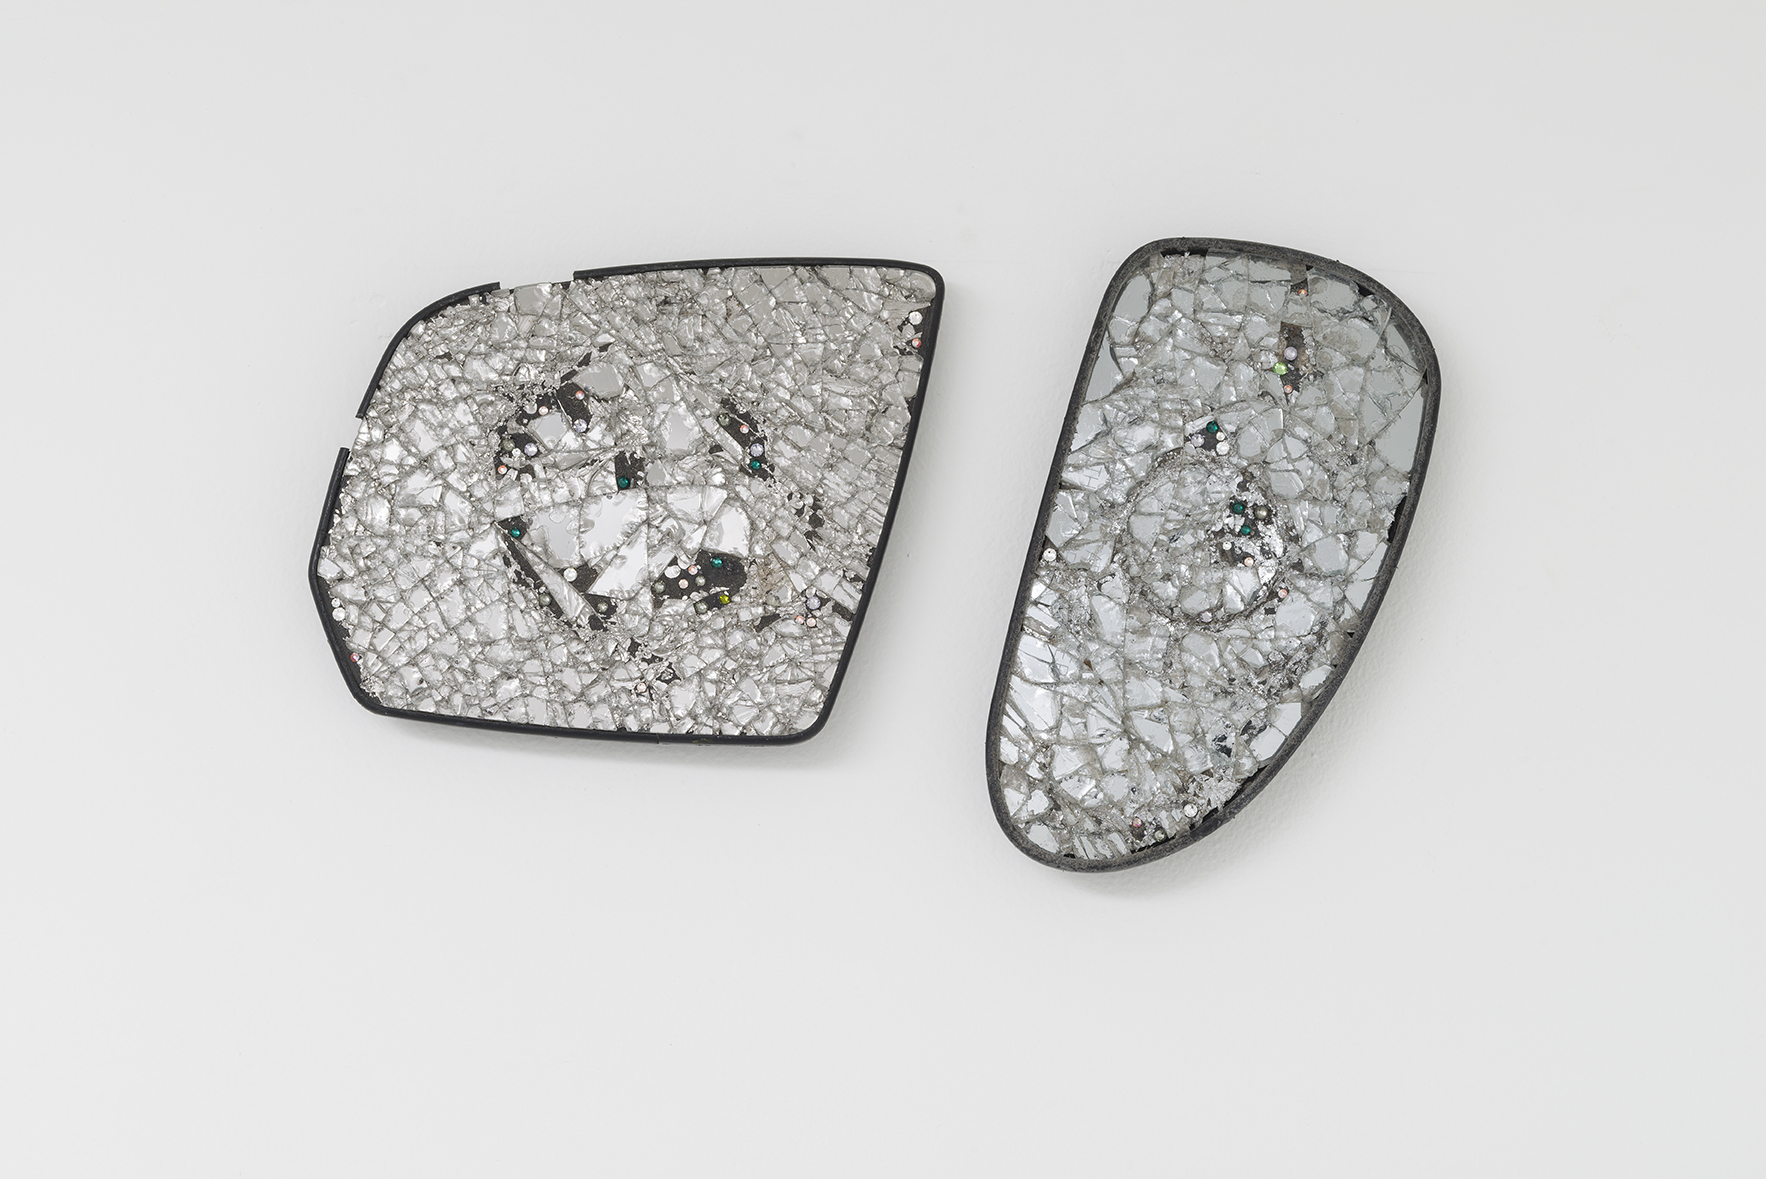 - Butt Model 176, 2015, rearview mirrors, crystals. 2 parts, 8 1/2 x 13 inches overall